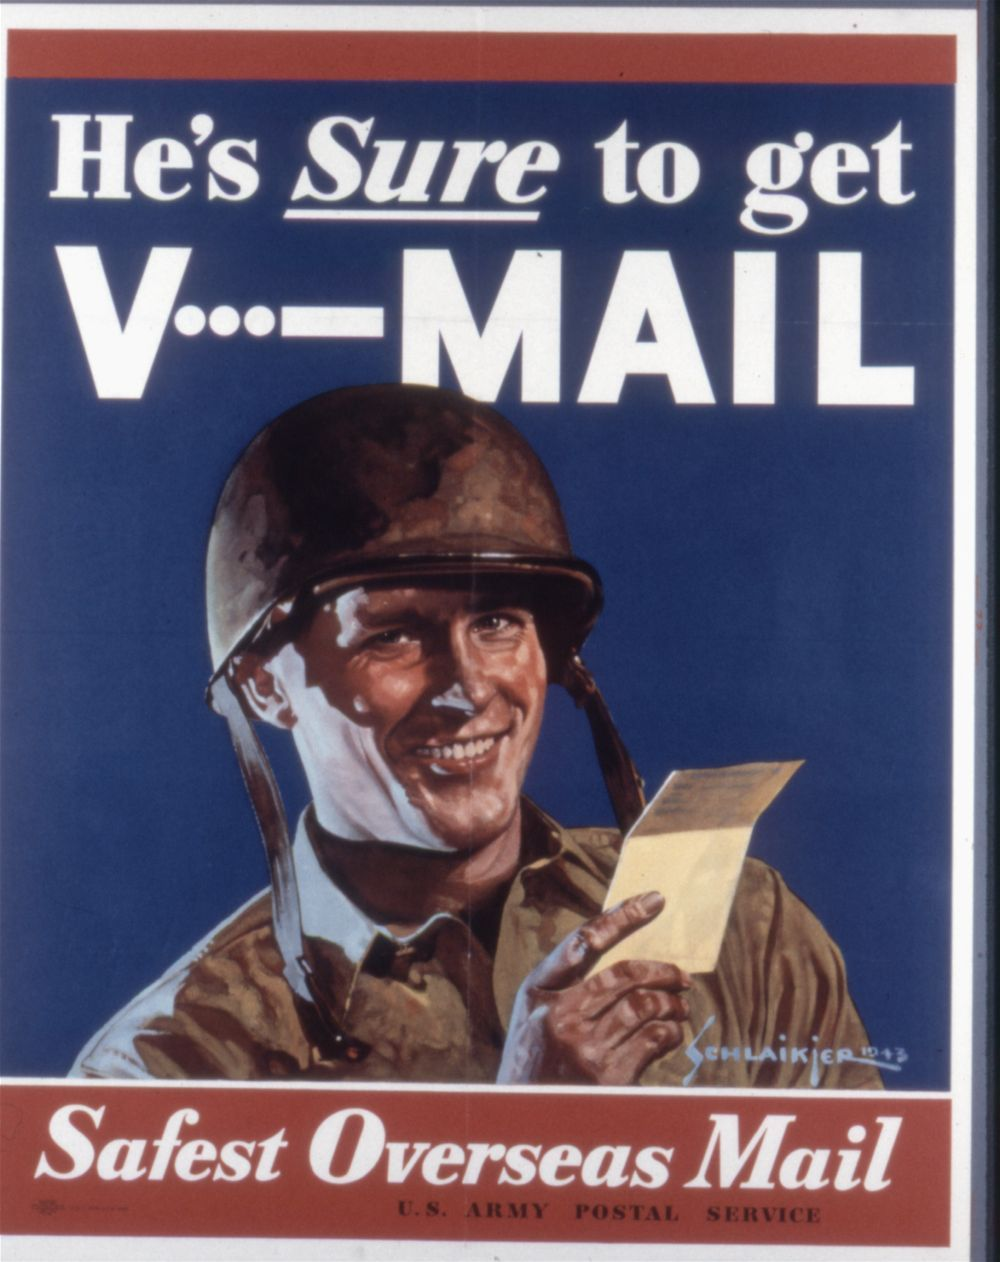 He's sure to get v-mail. Safest overseas mail